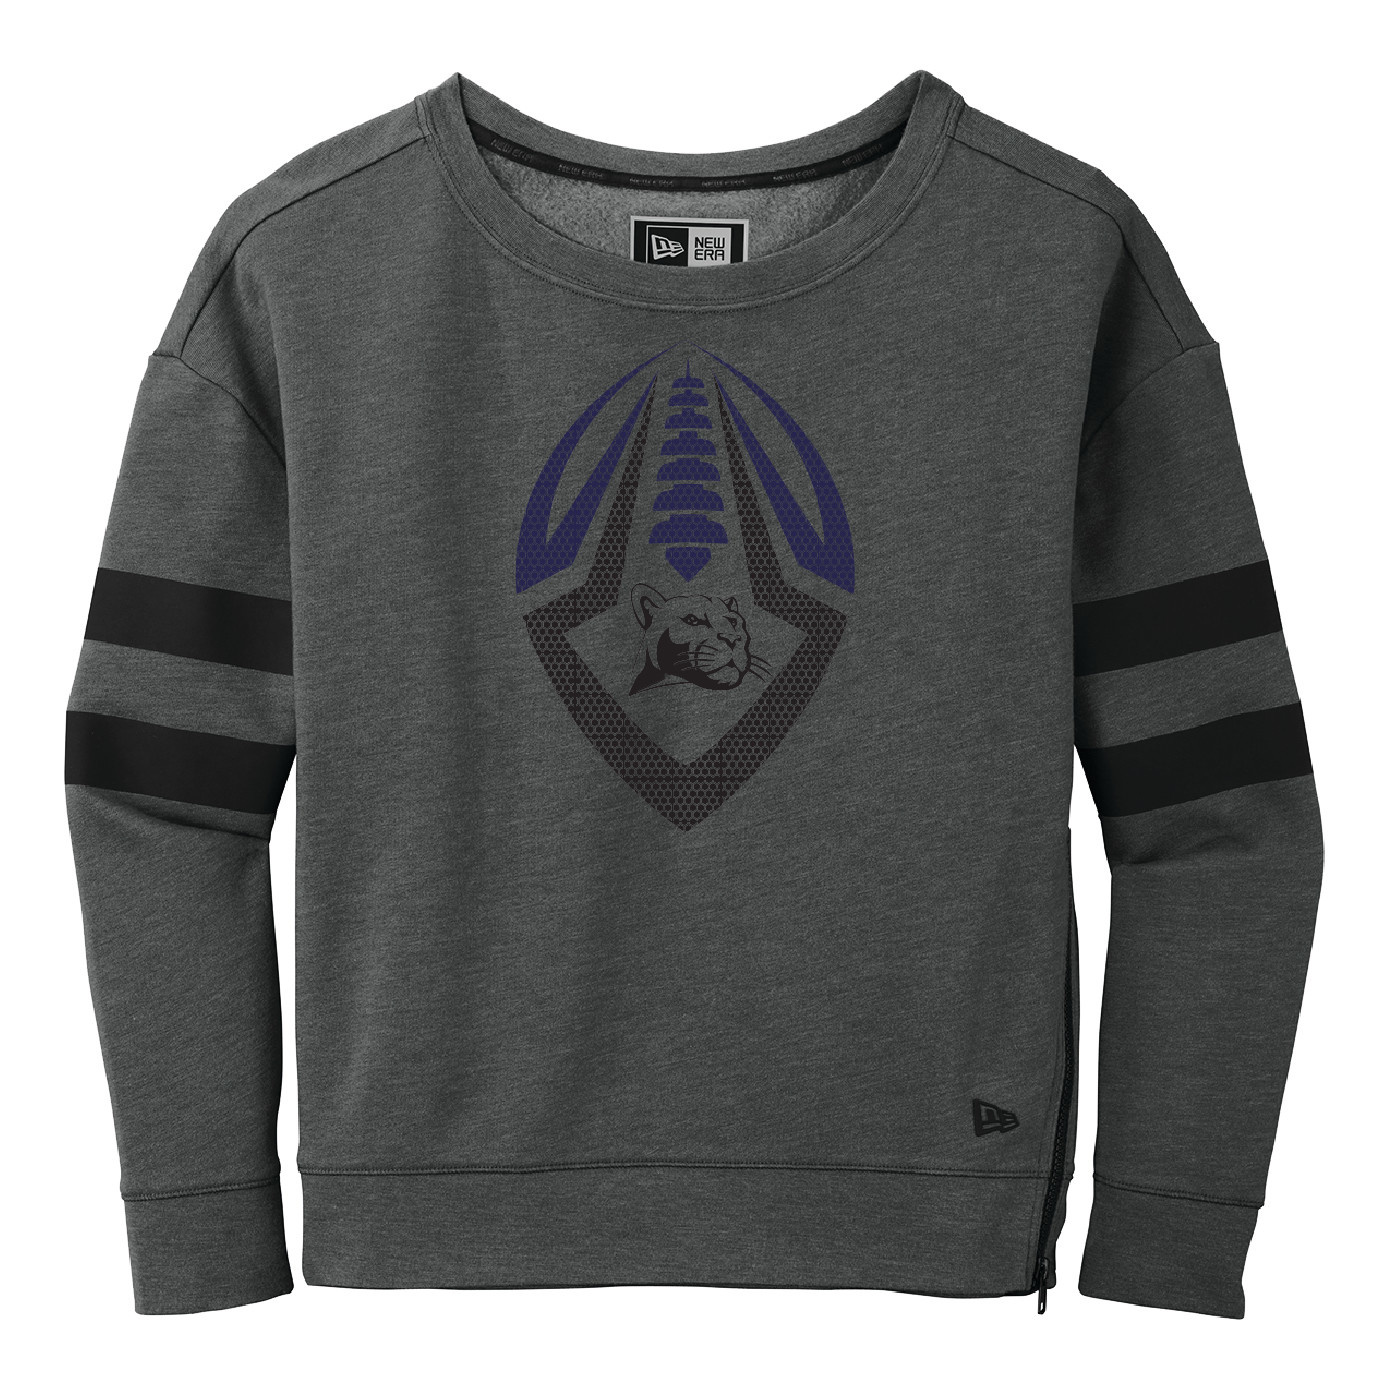 New Era Ladies Tri- Blend Fleece Varsity Crew (Black Heather)